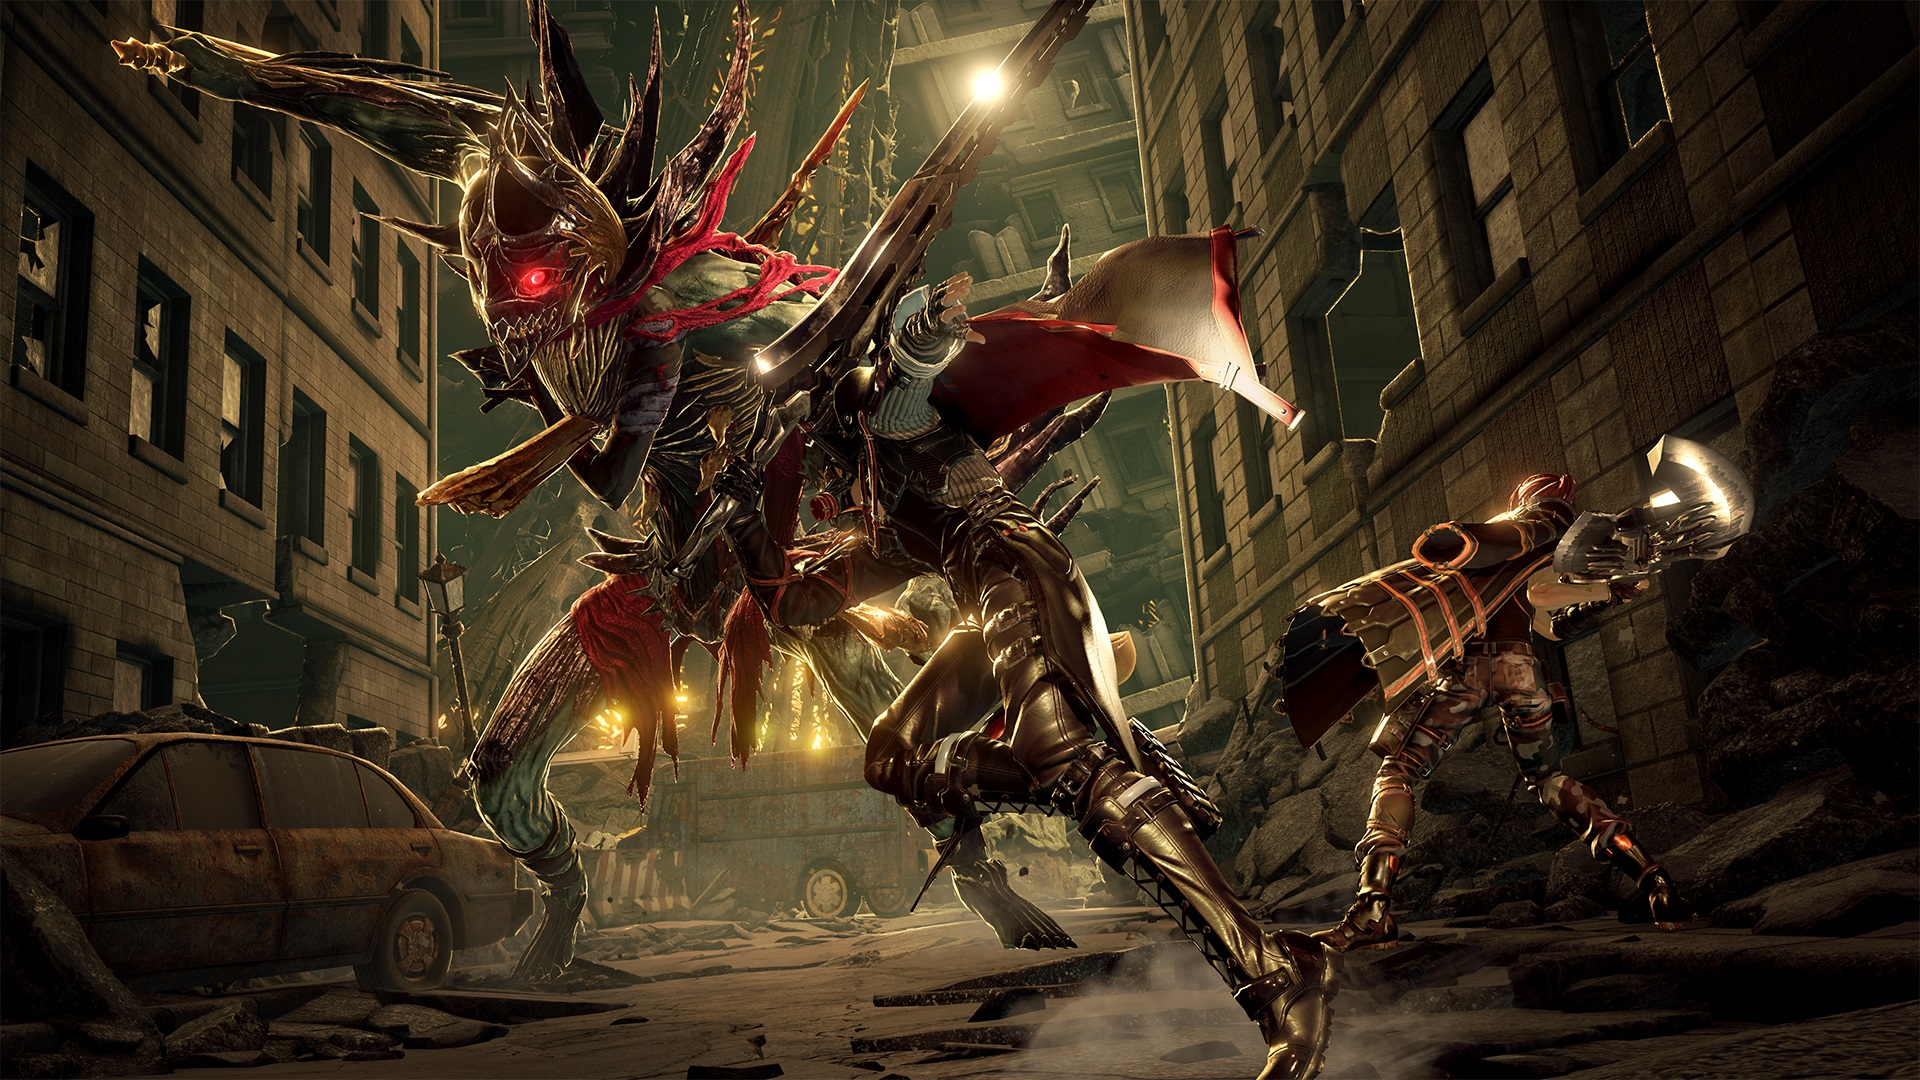 Code Vein is Bandai Namcos bloodthirsty adventure that takes place